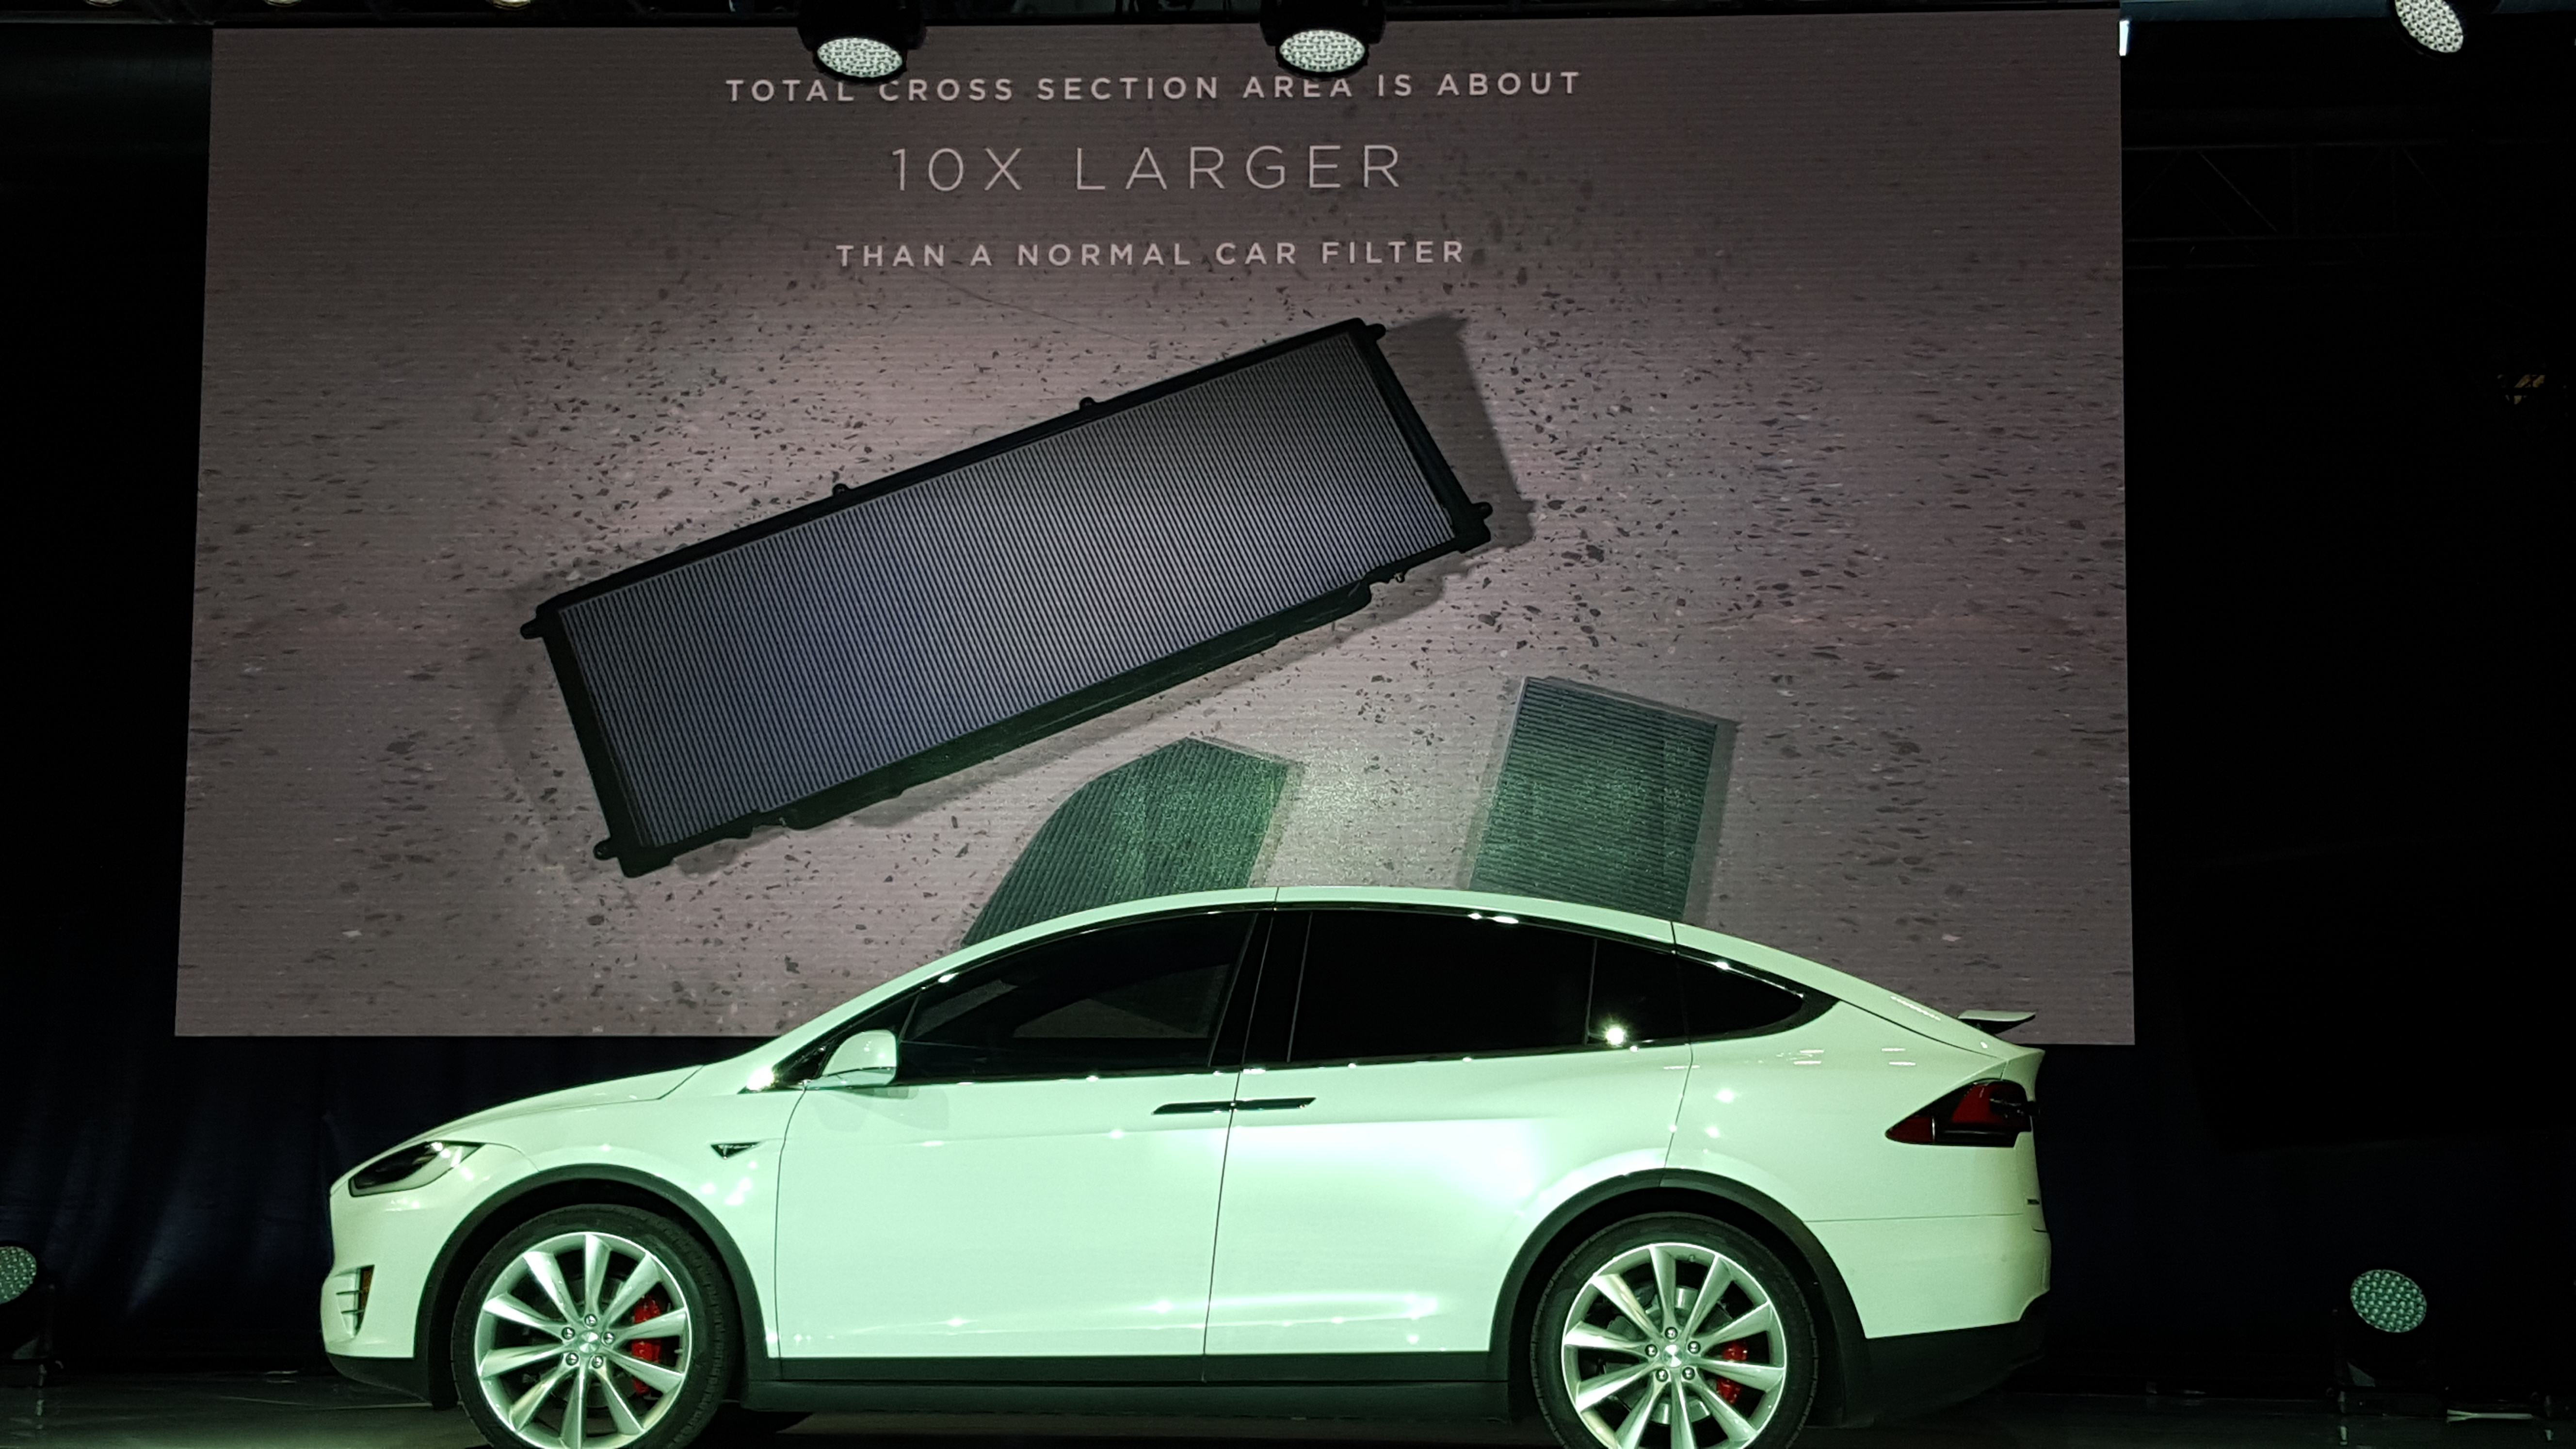 The Model X, and the new version of the Model S, come with an advanced air filtration system with a bioweapon defense mode button.